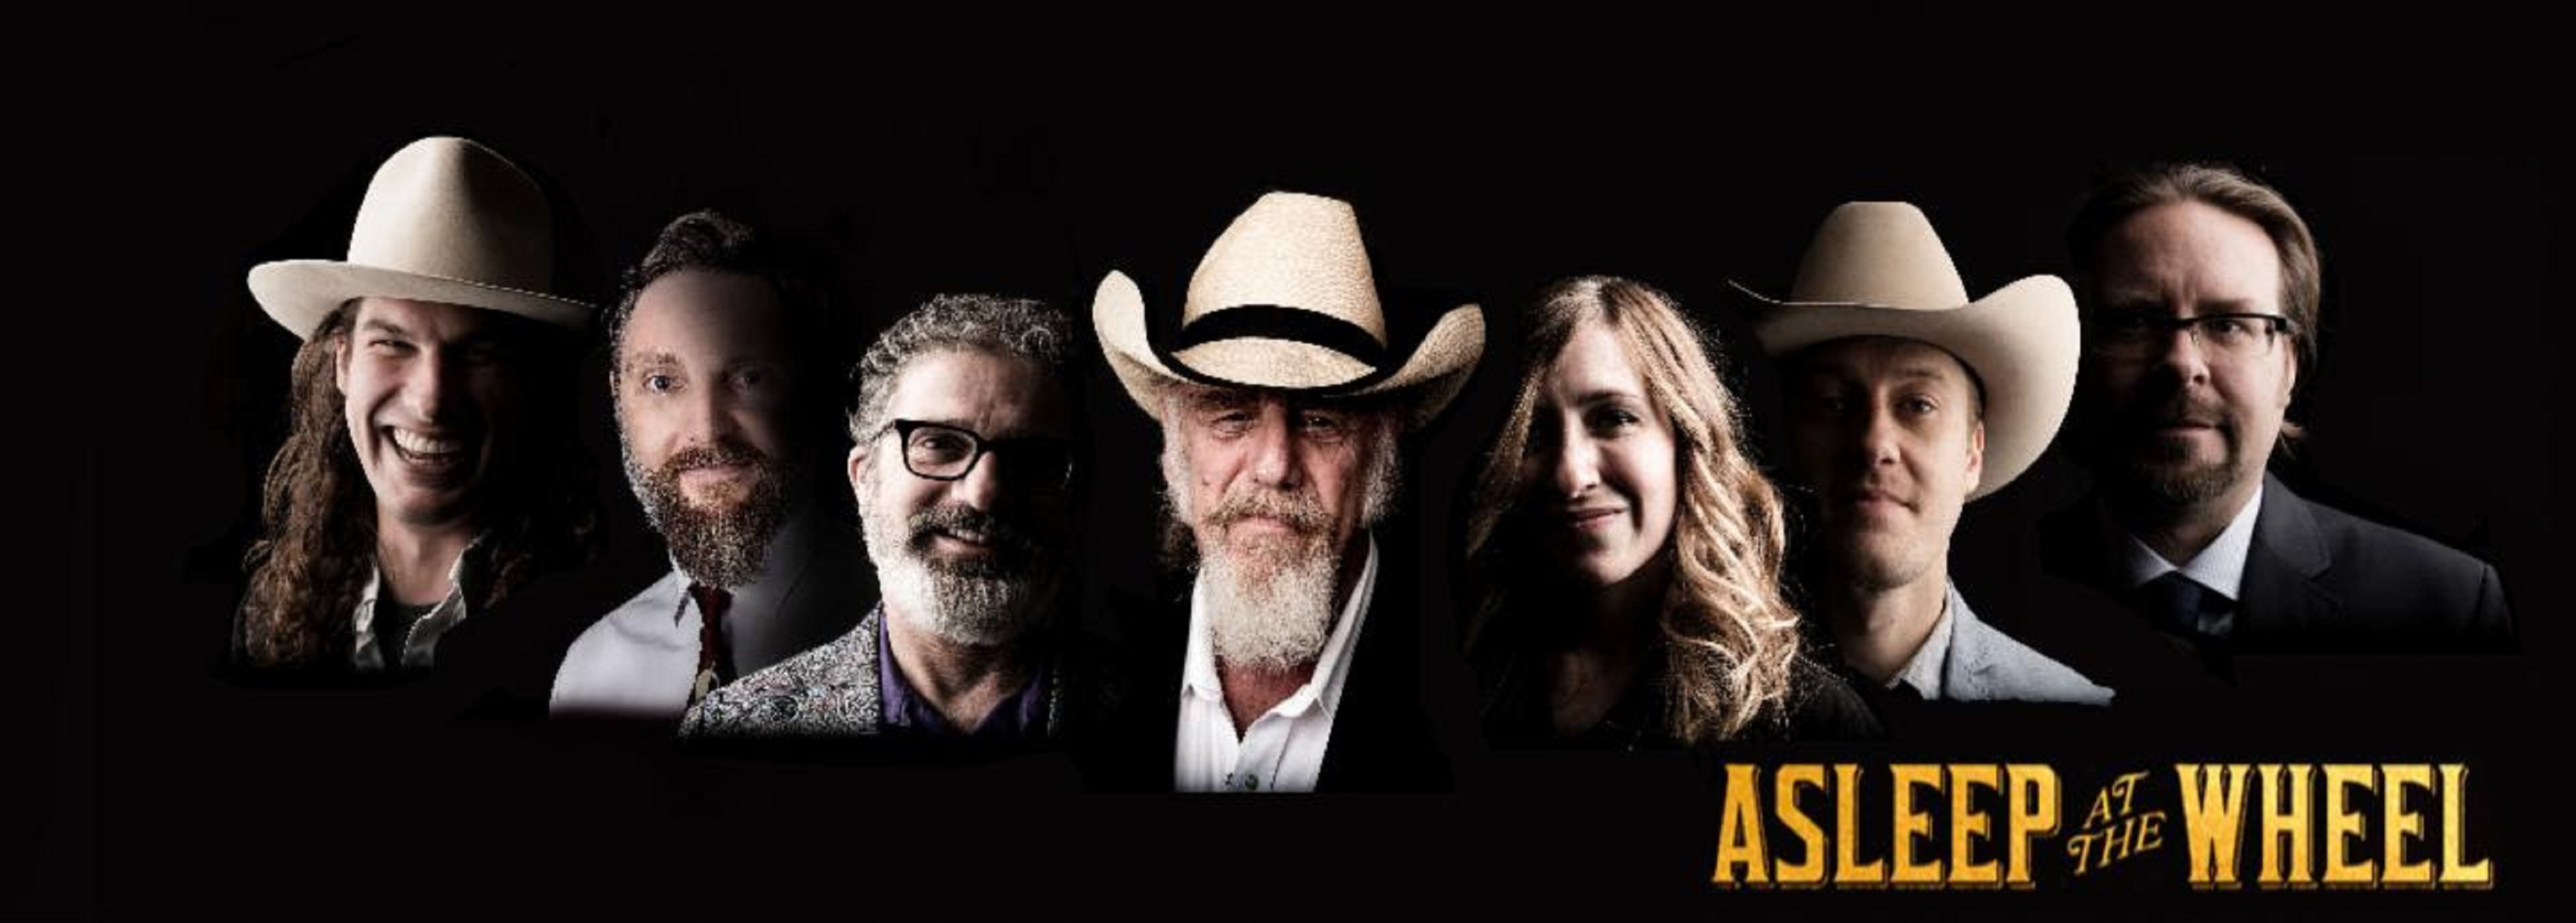 Asleep At The Wheel Partners with Austin City Limits For Five-Decade Career Retrospective On October 31st